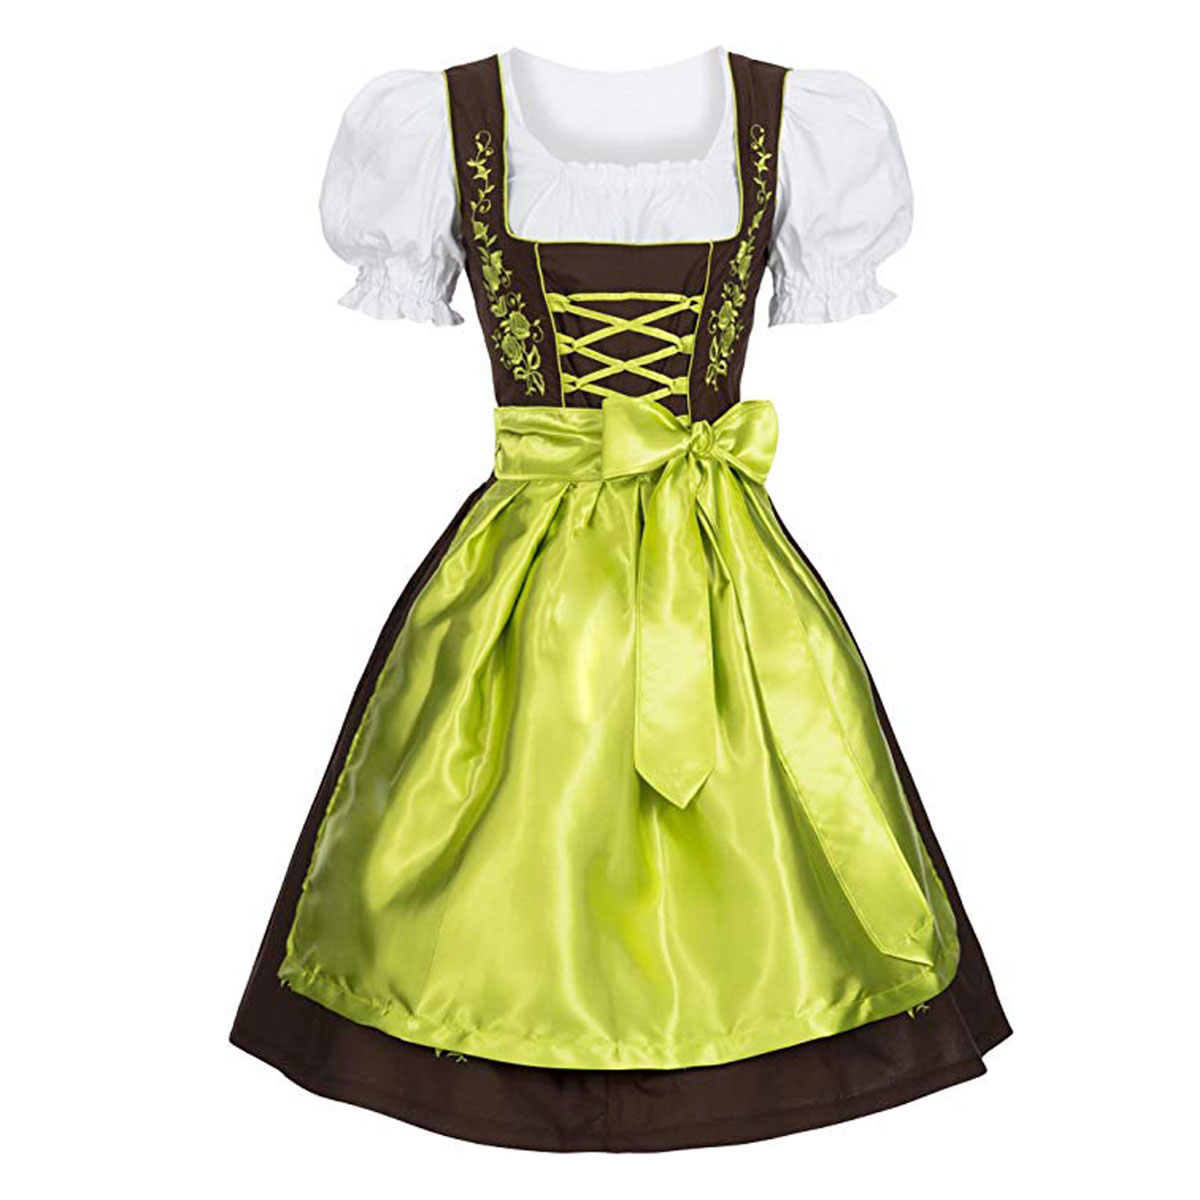 FLOWERS DIRNDL WITH PLAIN APPAREL